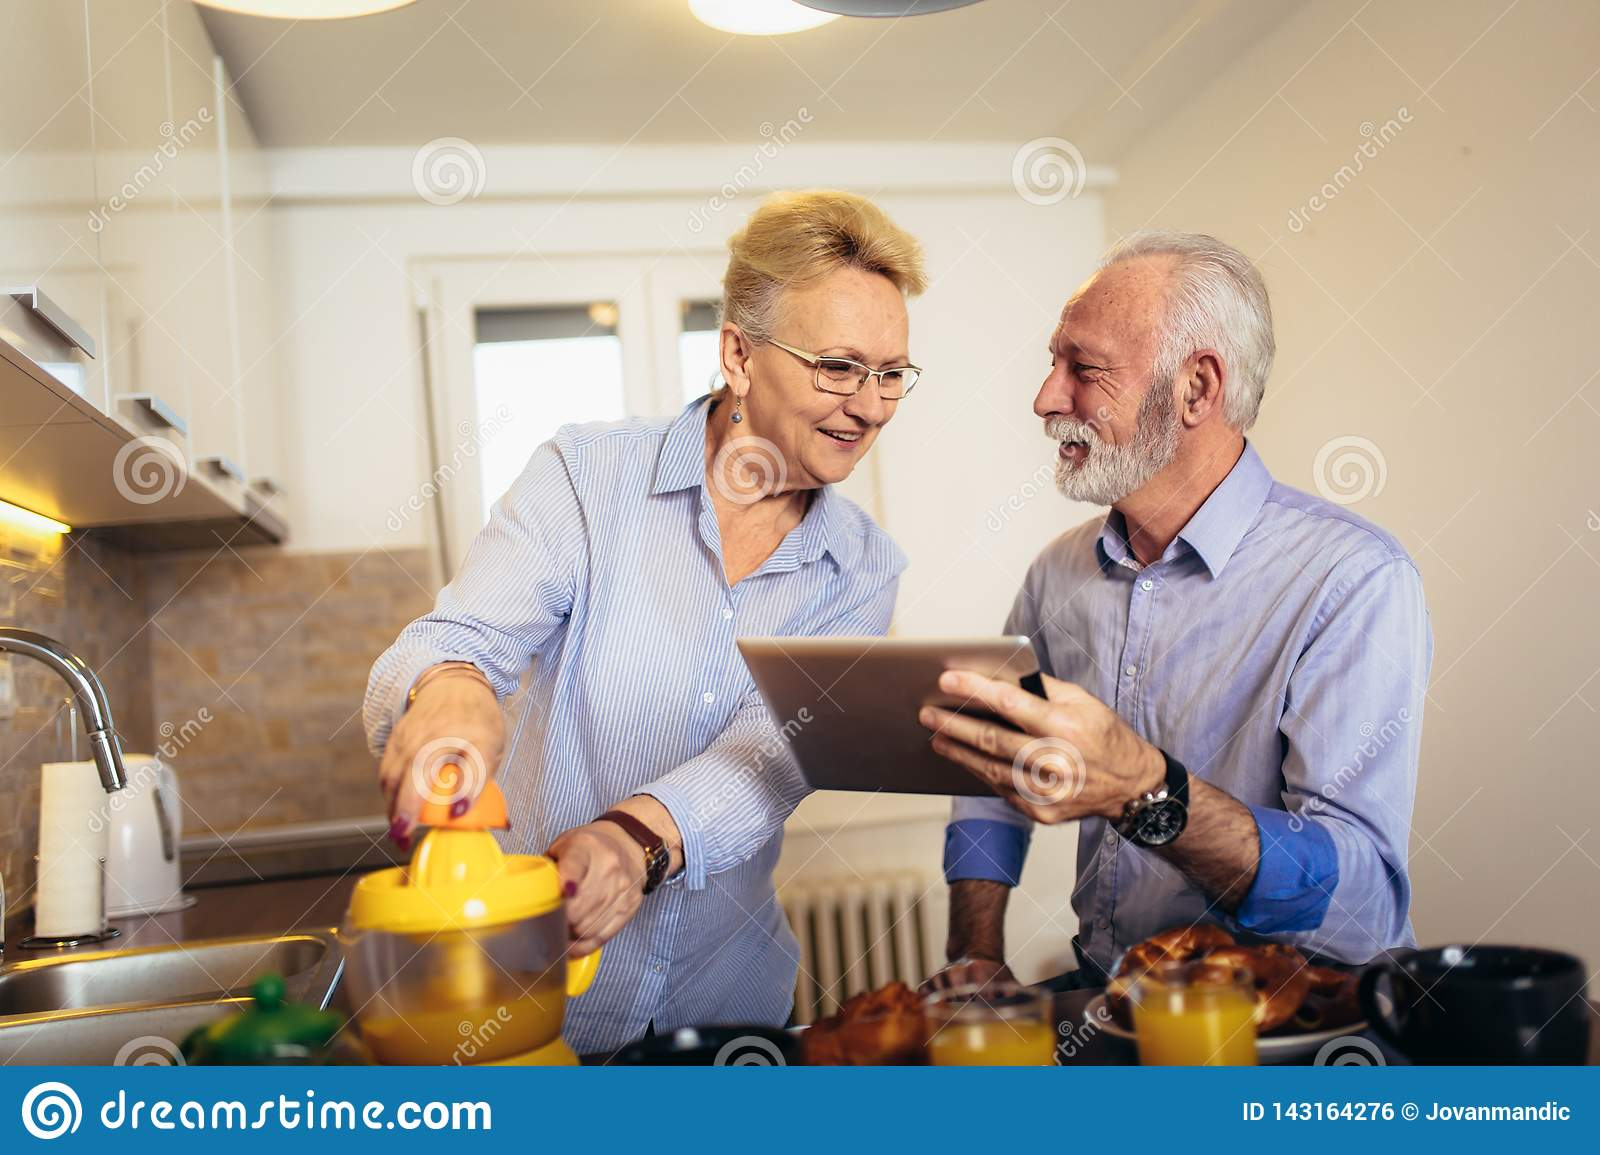 Couple busy look at digital tablet while having delicious breakfast at home kitchen